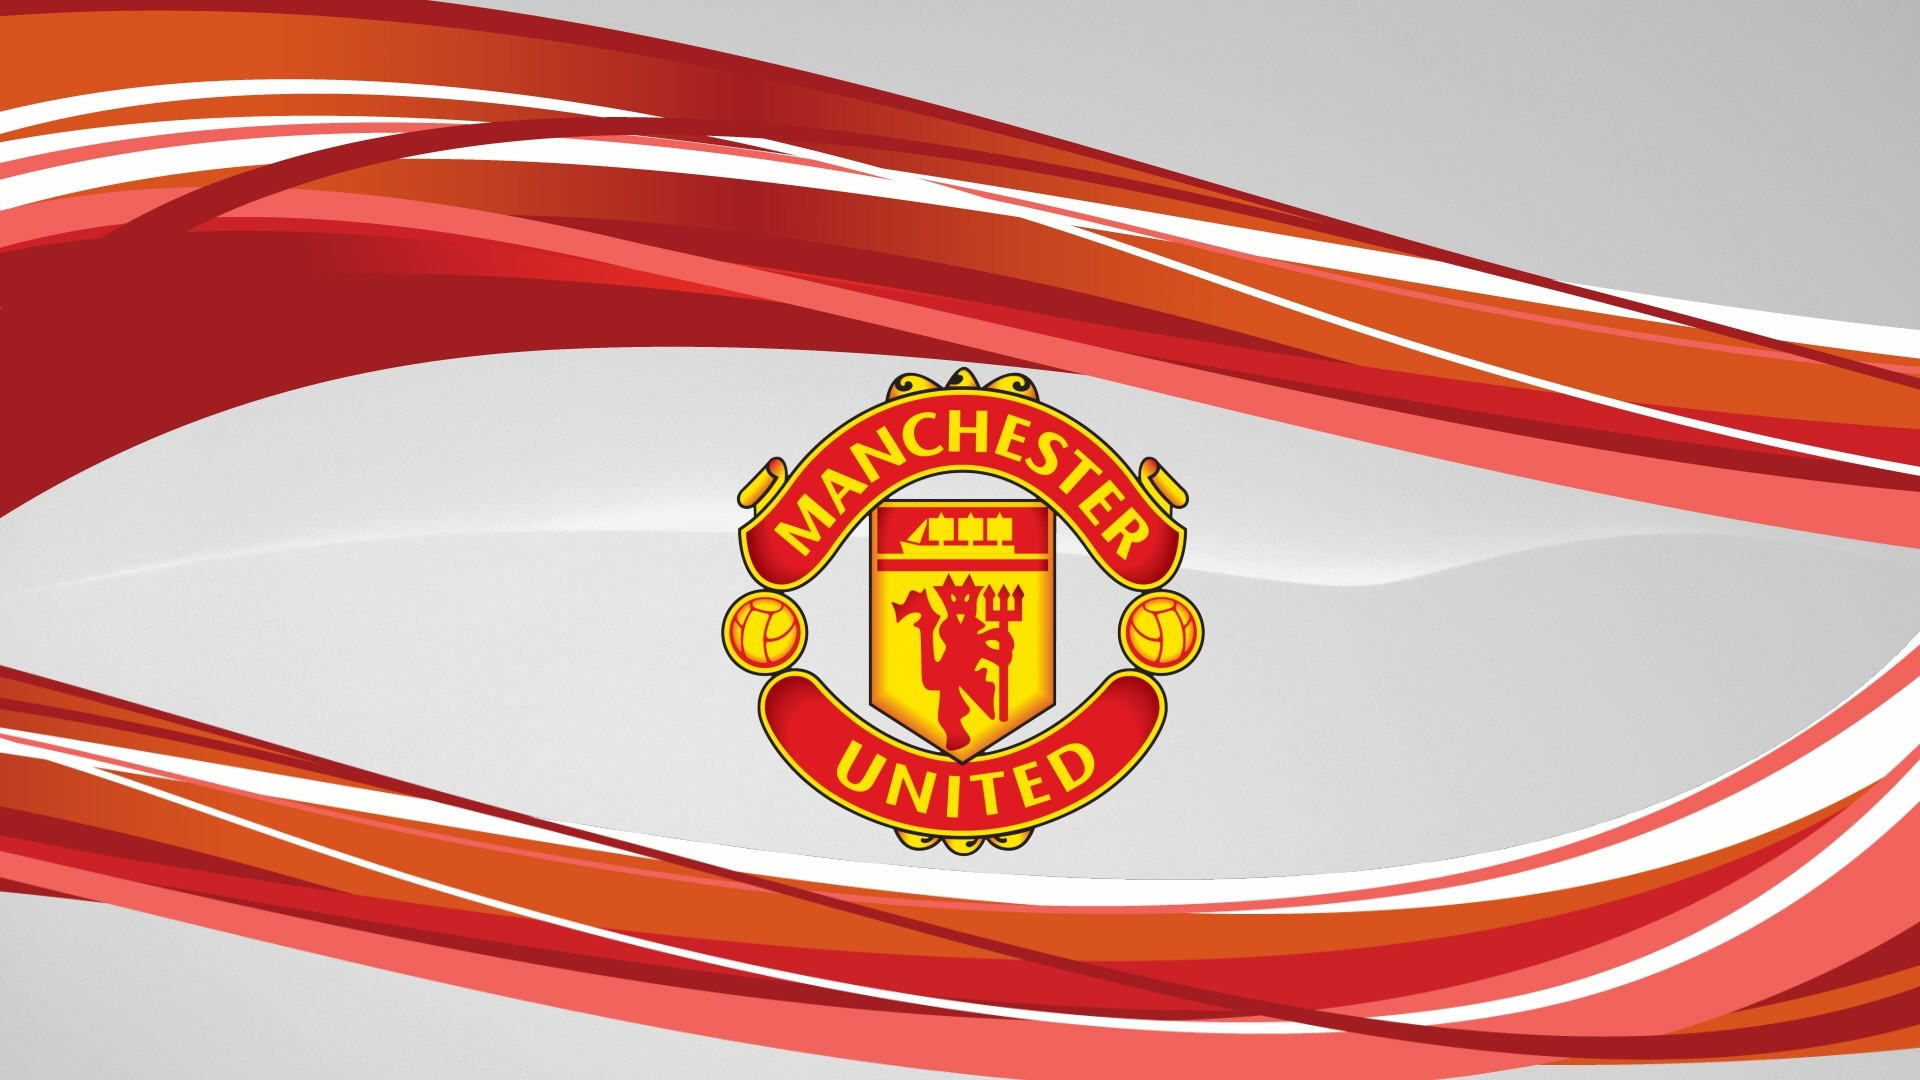 Manchester United Abstract Hd Wallpaper